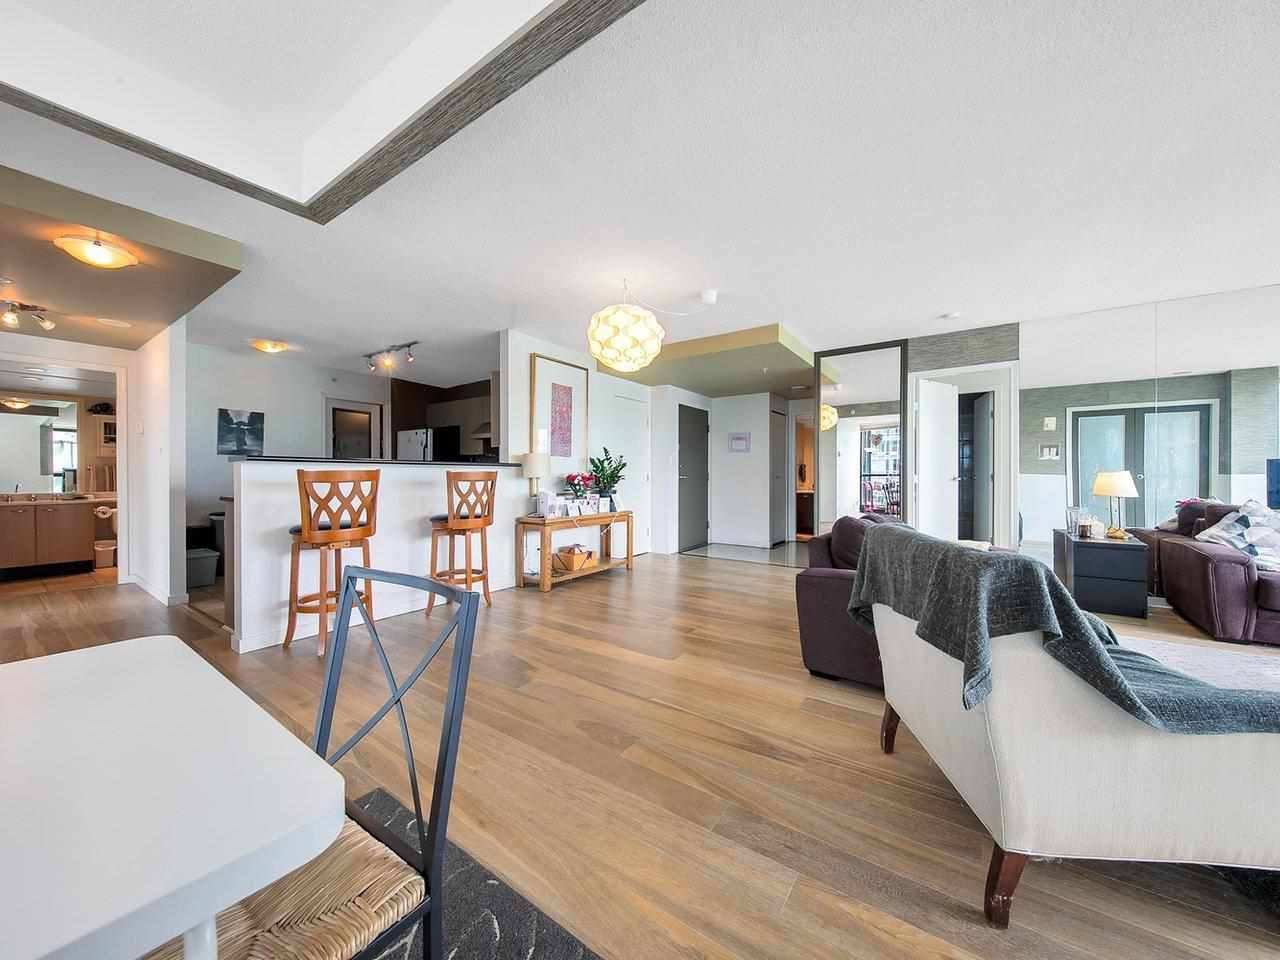 2701 1331 ALBERNI STREET - West End VW Apartment/Condo for sale, 3 Bedrooms (R2576100) - #8